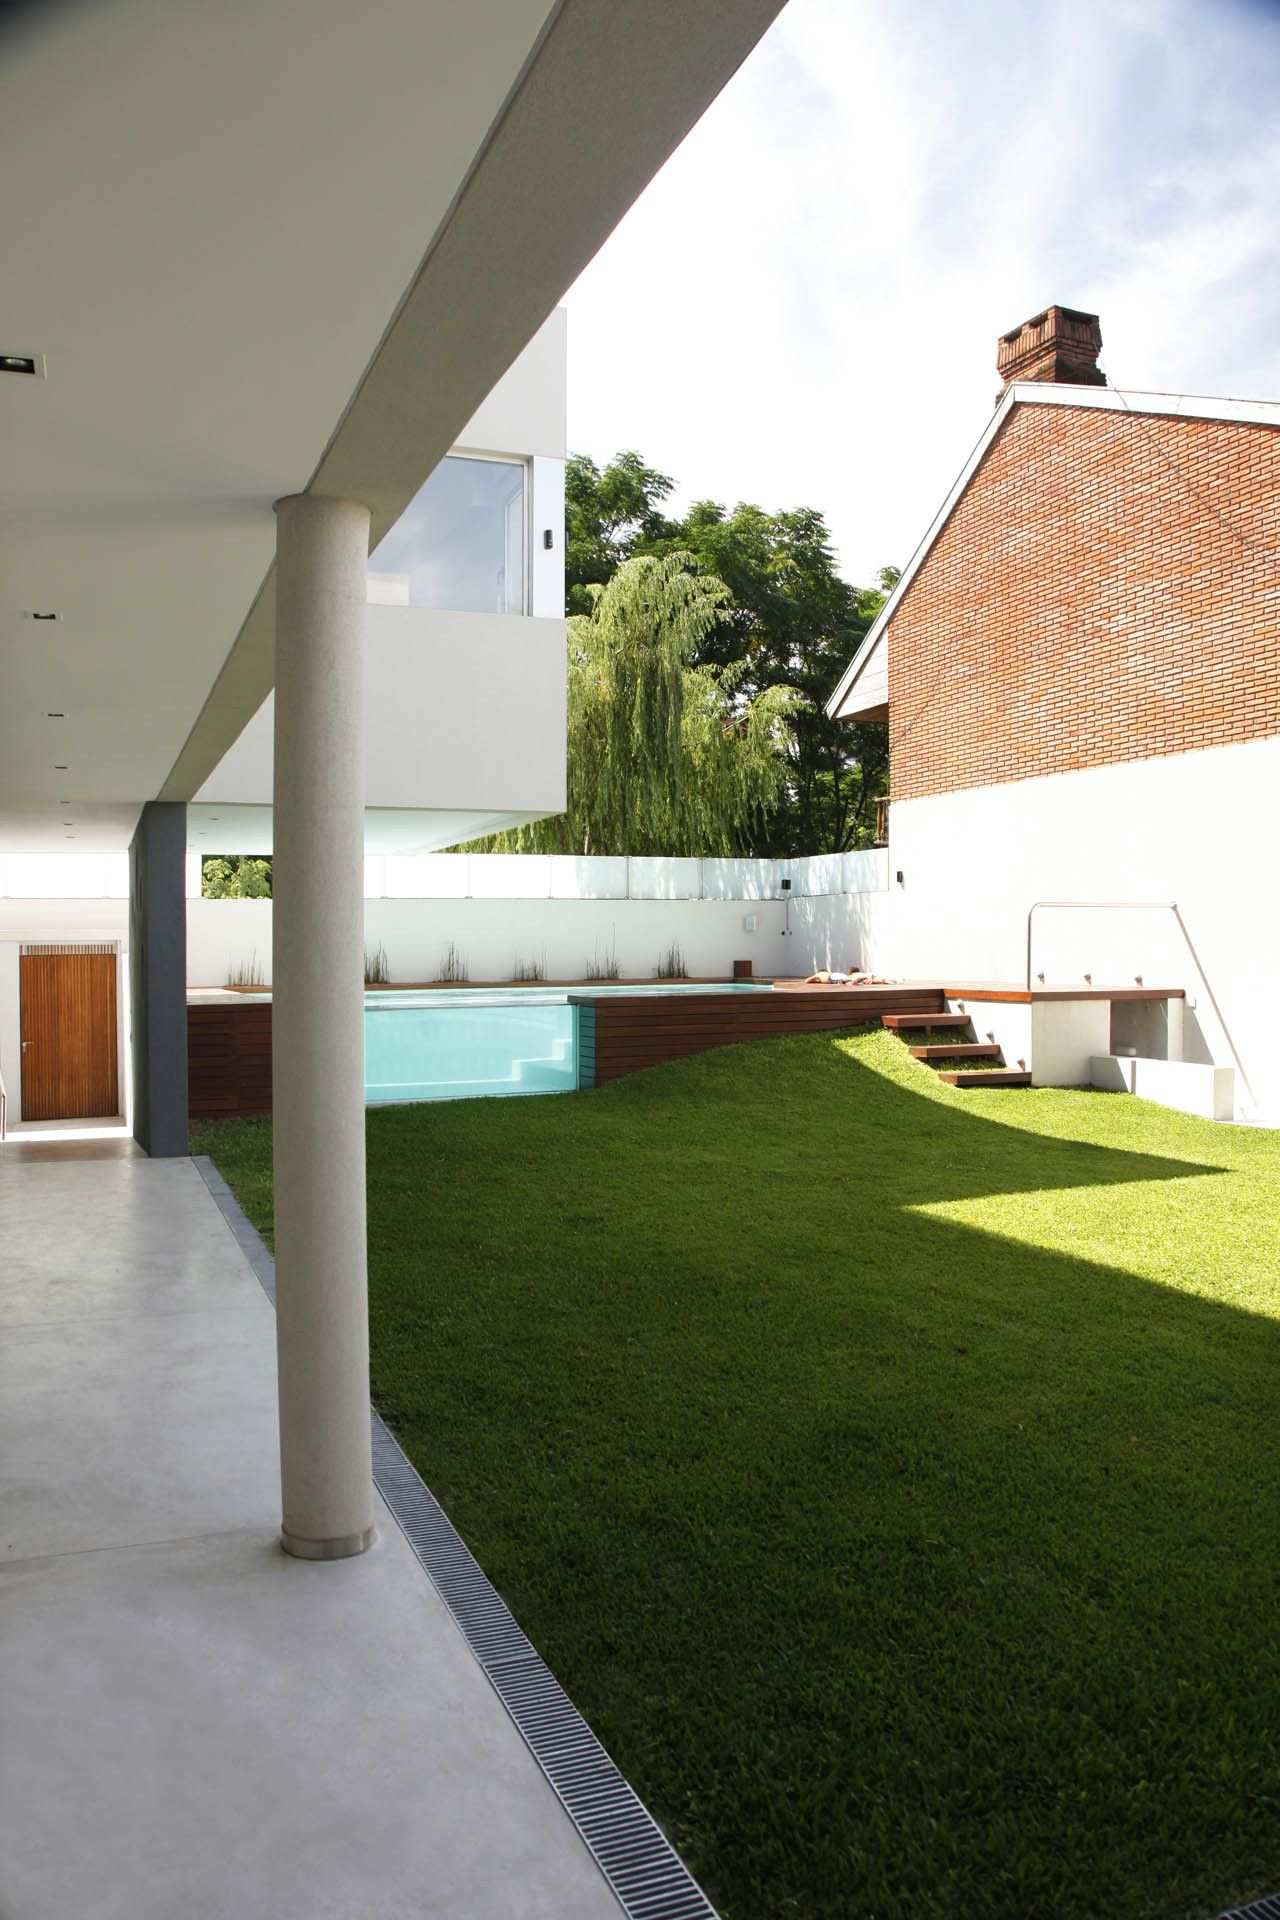 Wood Deck Swimming pool by Devoto House by Andres Remy Arquitectos